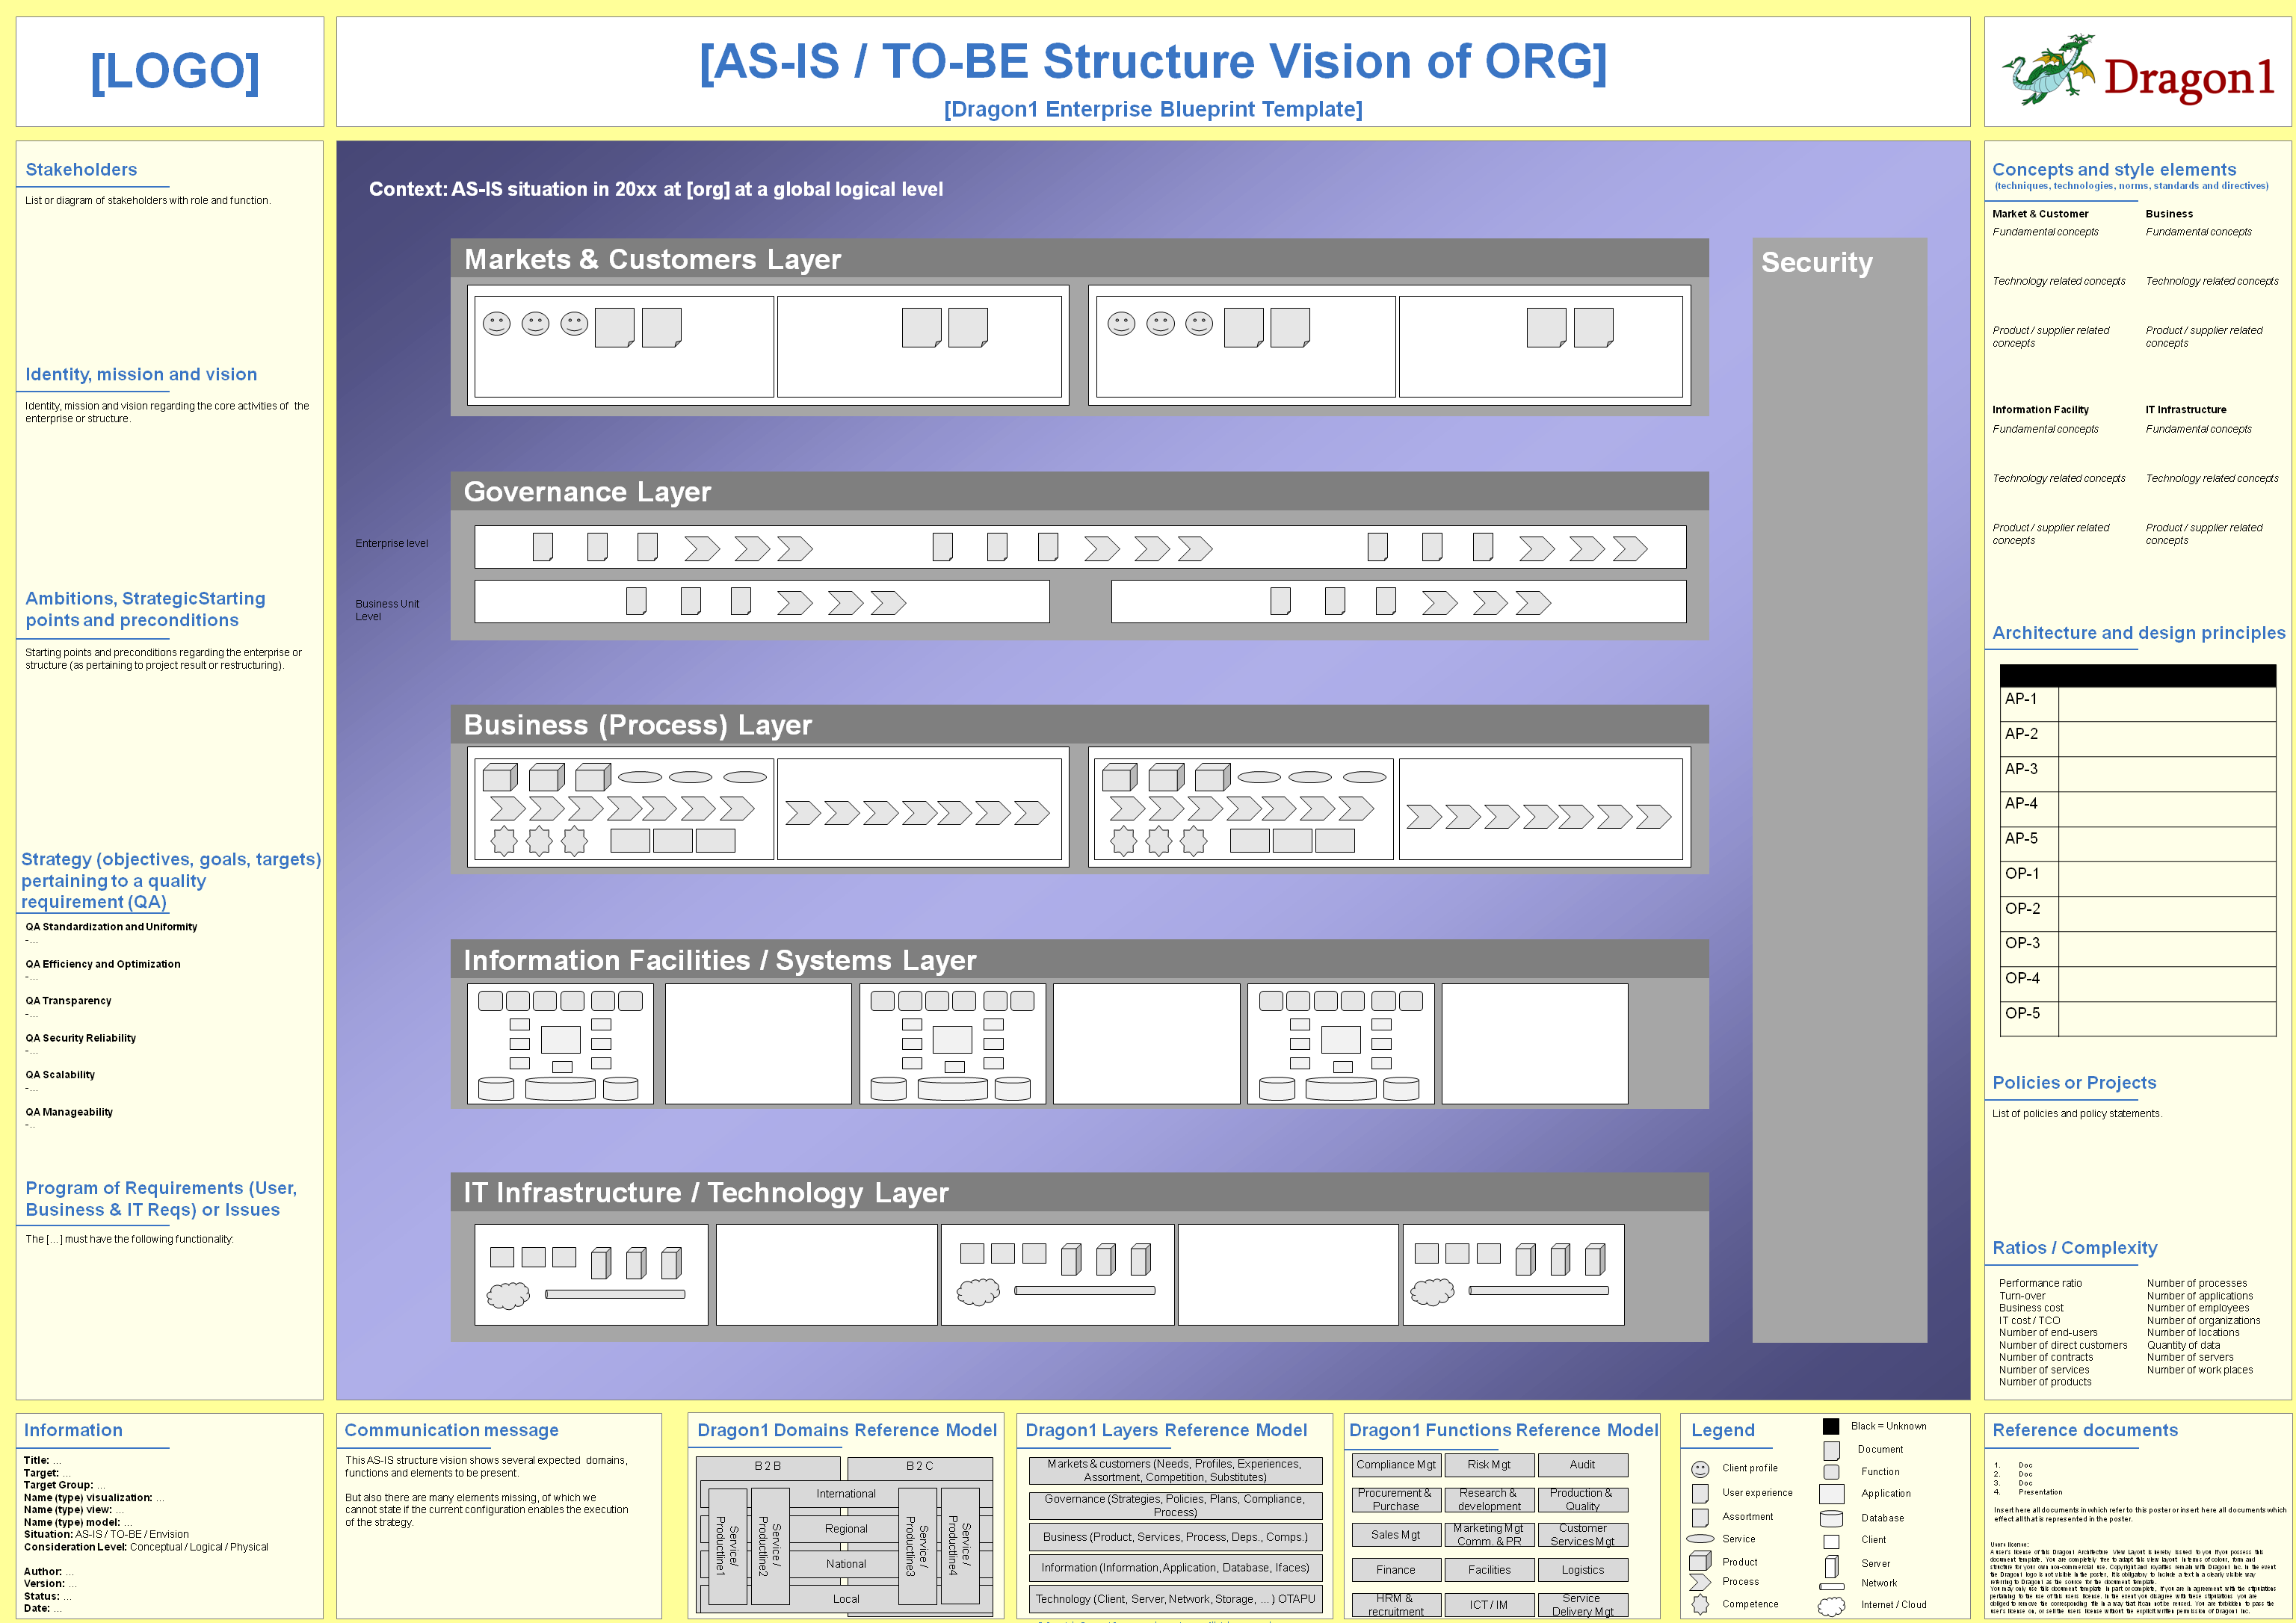 Enterprise architecture blueprint diagram template dragon1 enterprise architecture blueprint template malvernweather Image collections